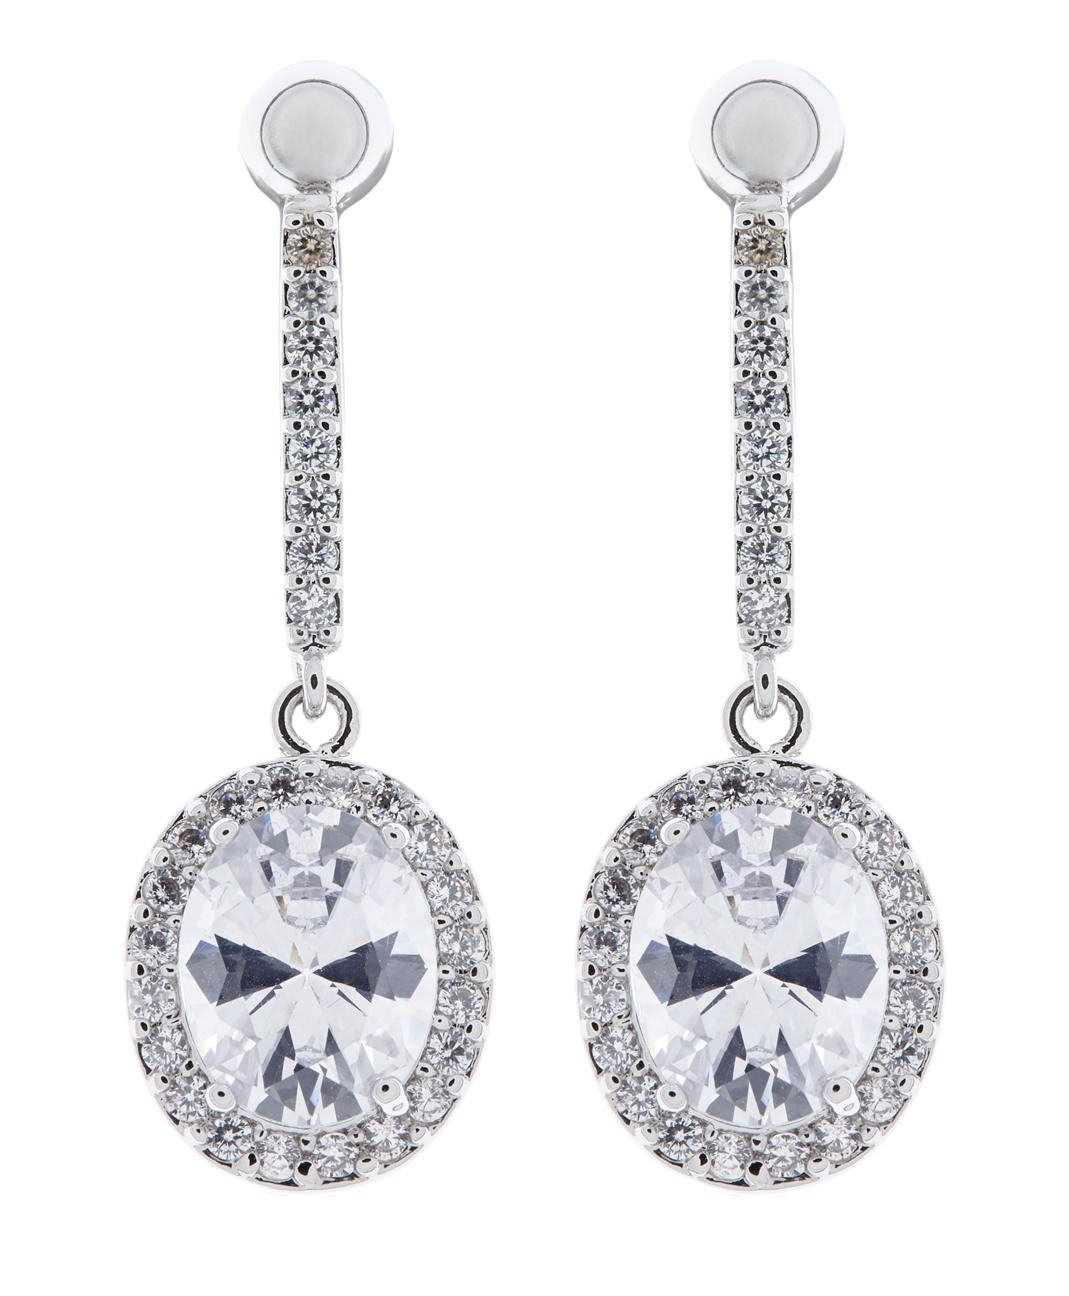 Clip On Earrings - Meryl C - silver drop earring with clear cubic zirconia crystals and stone